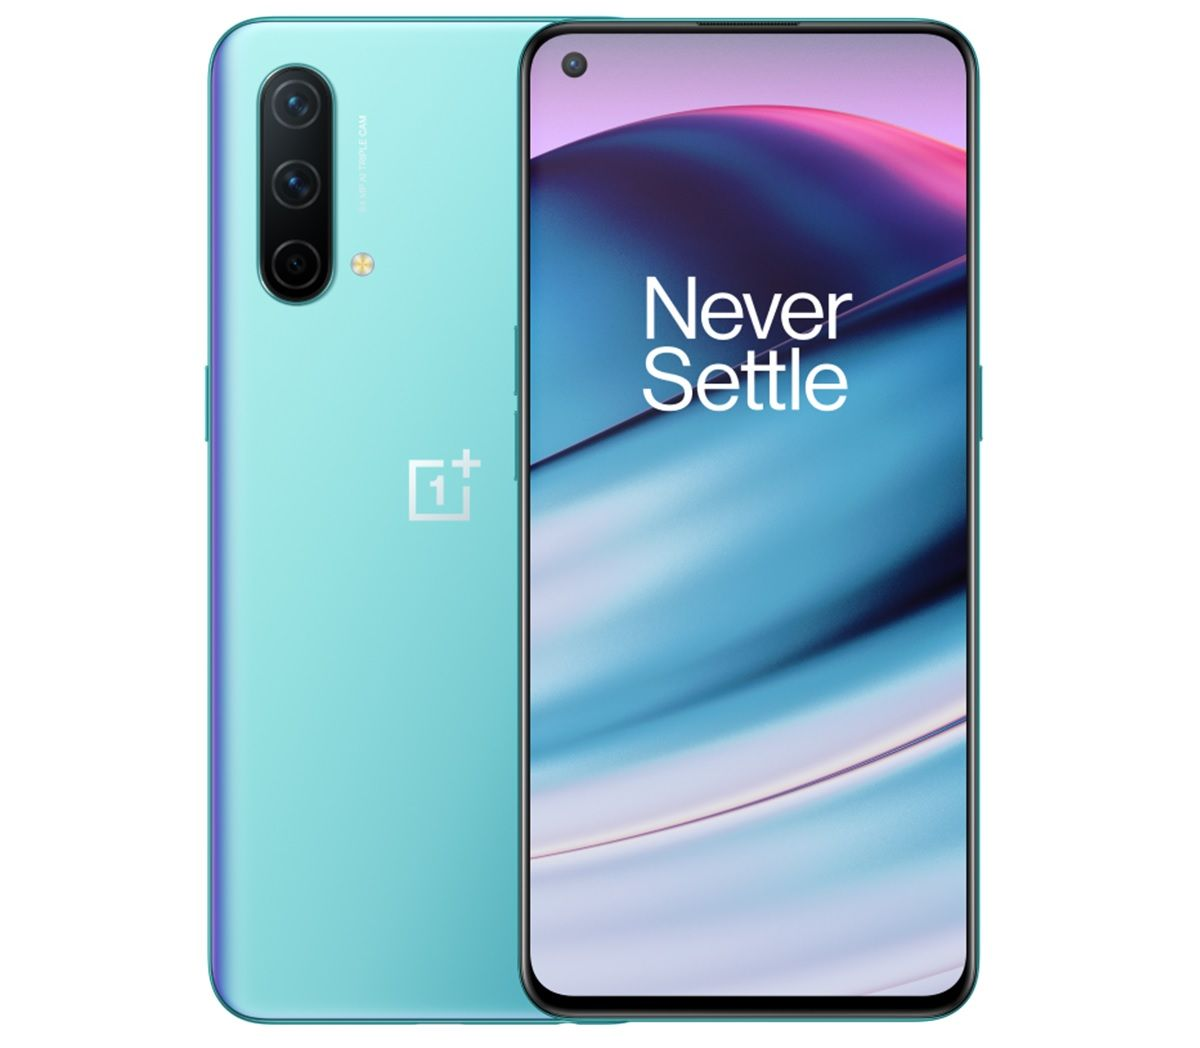 oneplus nord ce movil